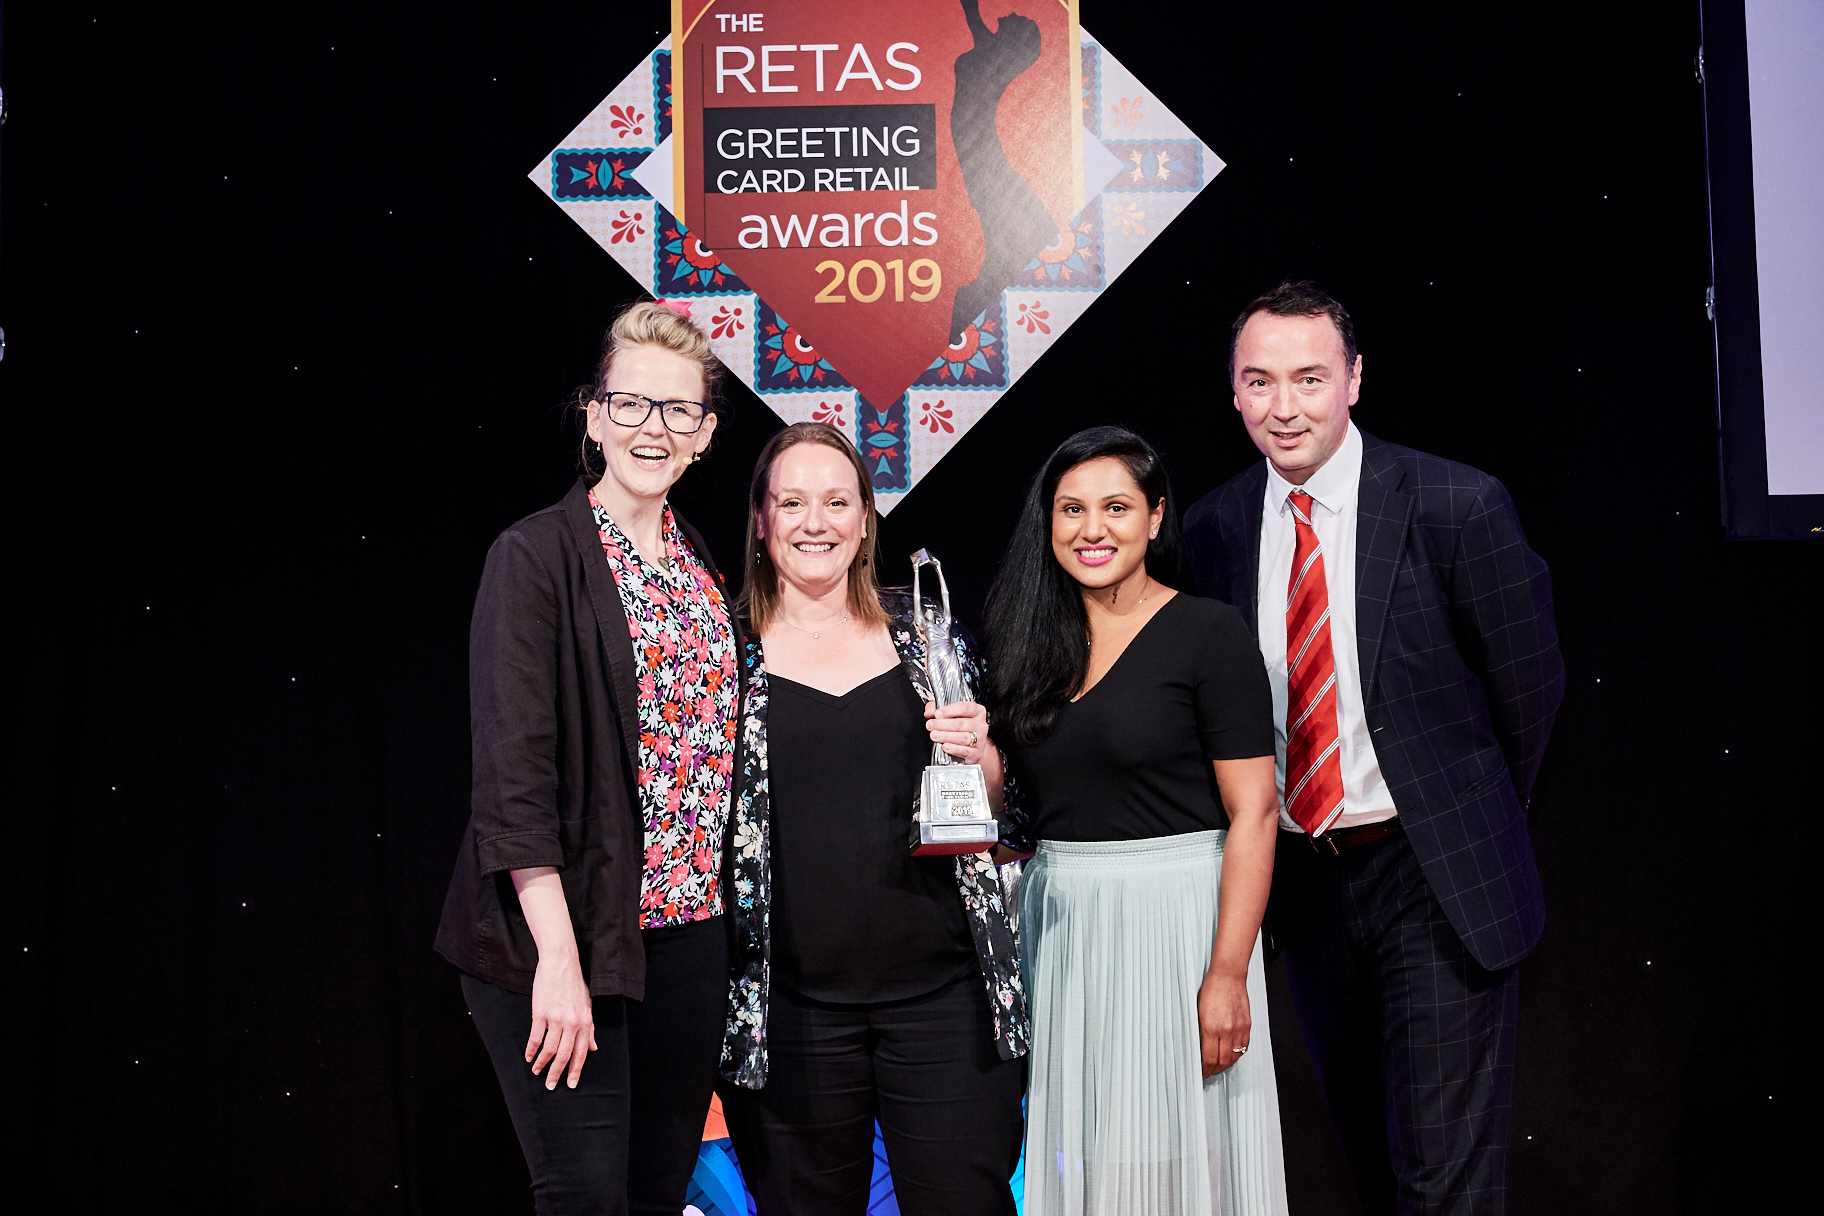 Above: Having been awarded Best Department Store Retailer of Greeting Cards in The Retas 2019, John Lewis' Lisa Rutherford (second left) and merchandiser Payal Shah collected trophy from Nick Carey, managing director for Abacus Cards, the category sponsor. Pippa Evans, who hosted the event is pictured far left.